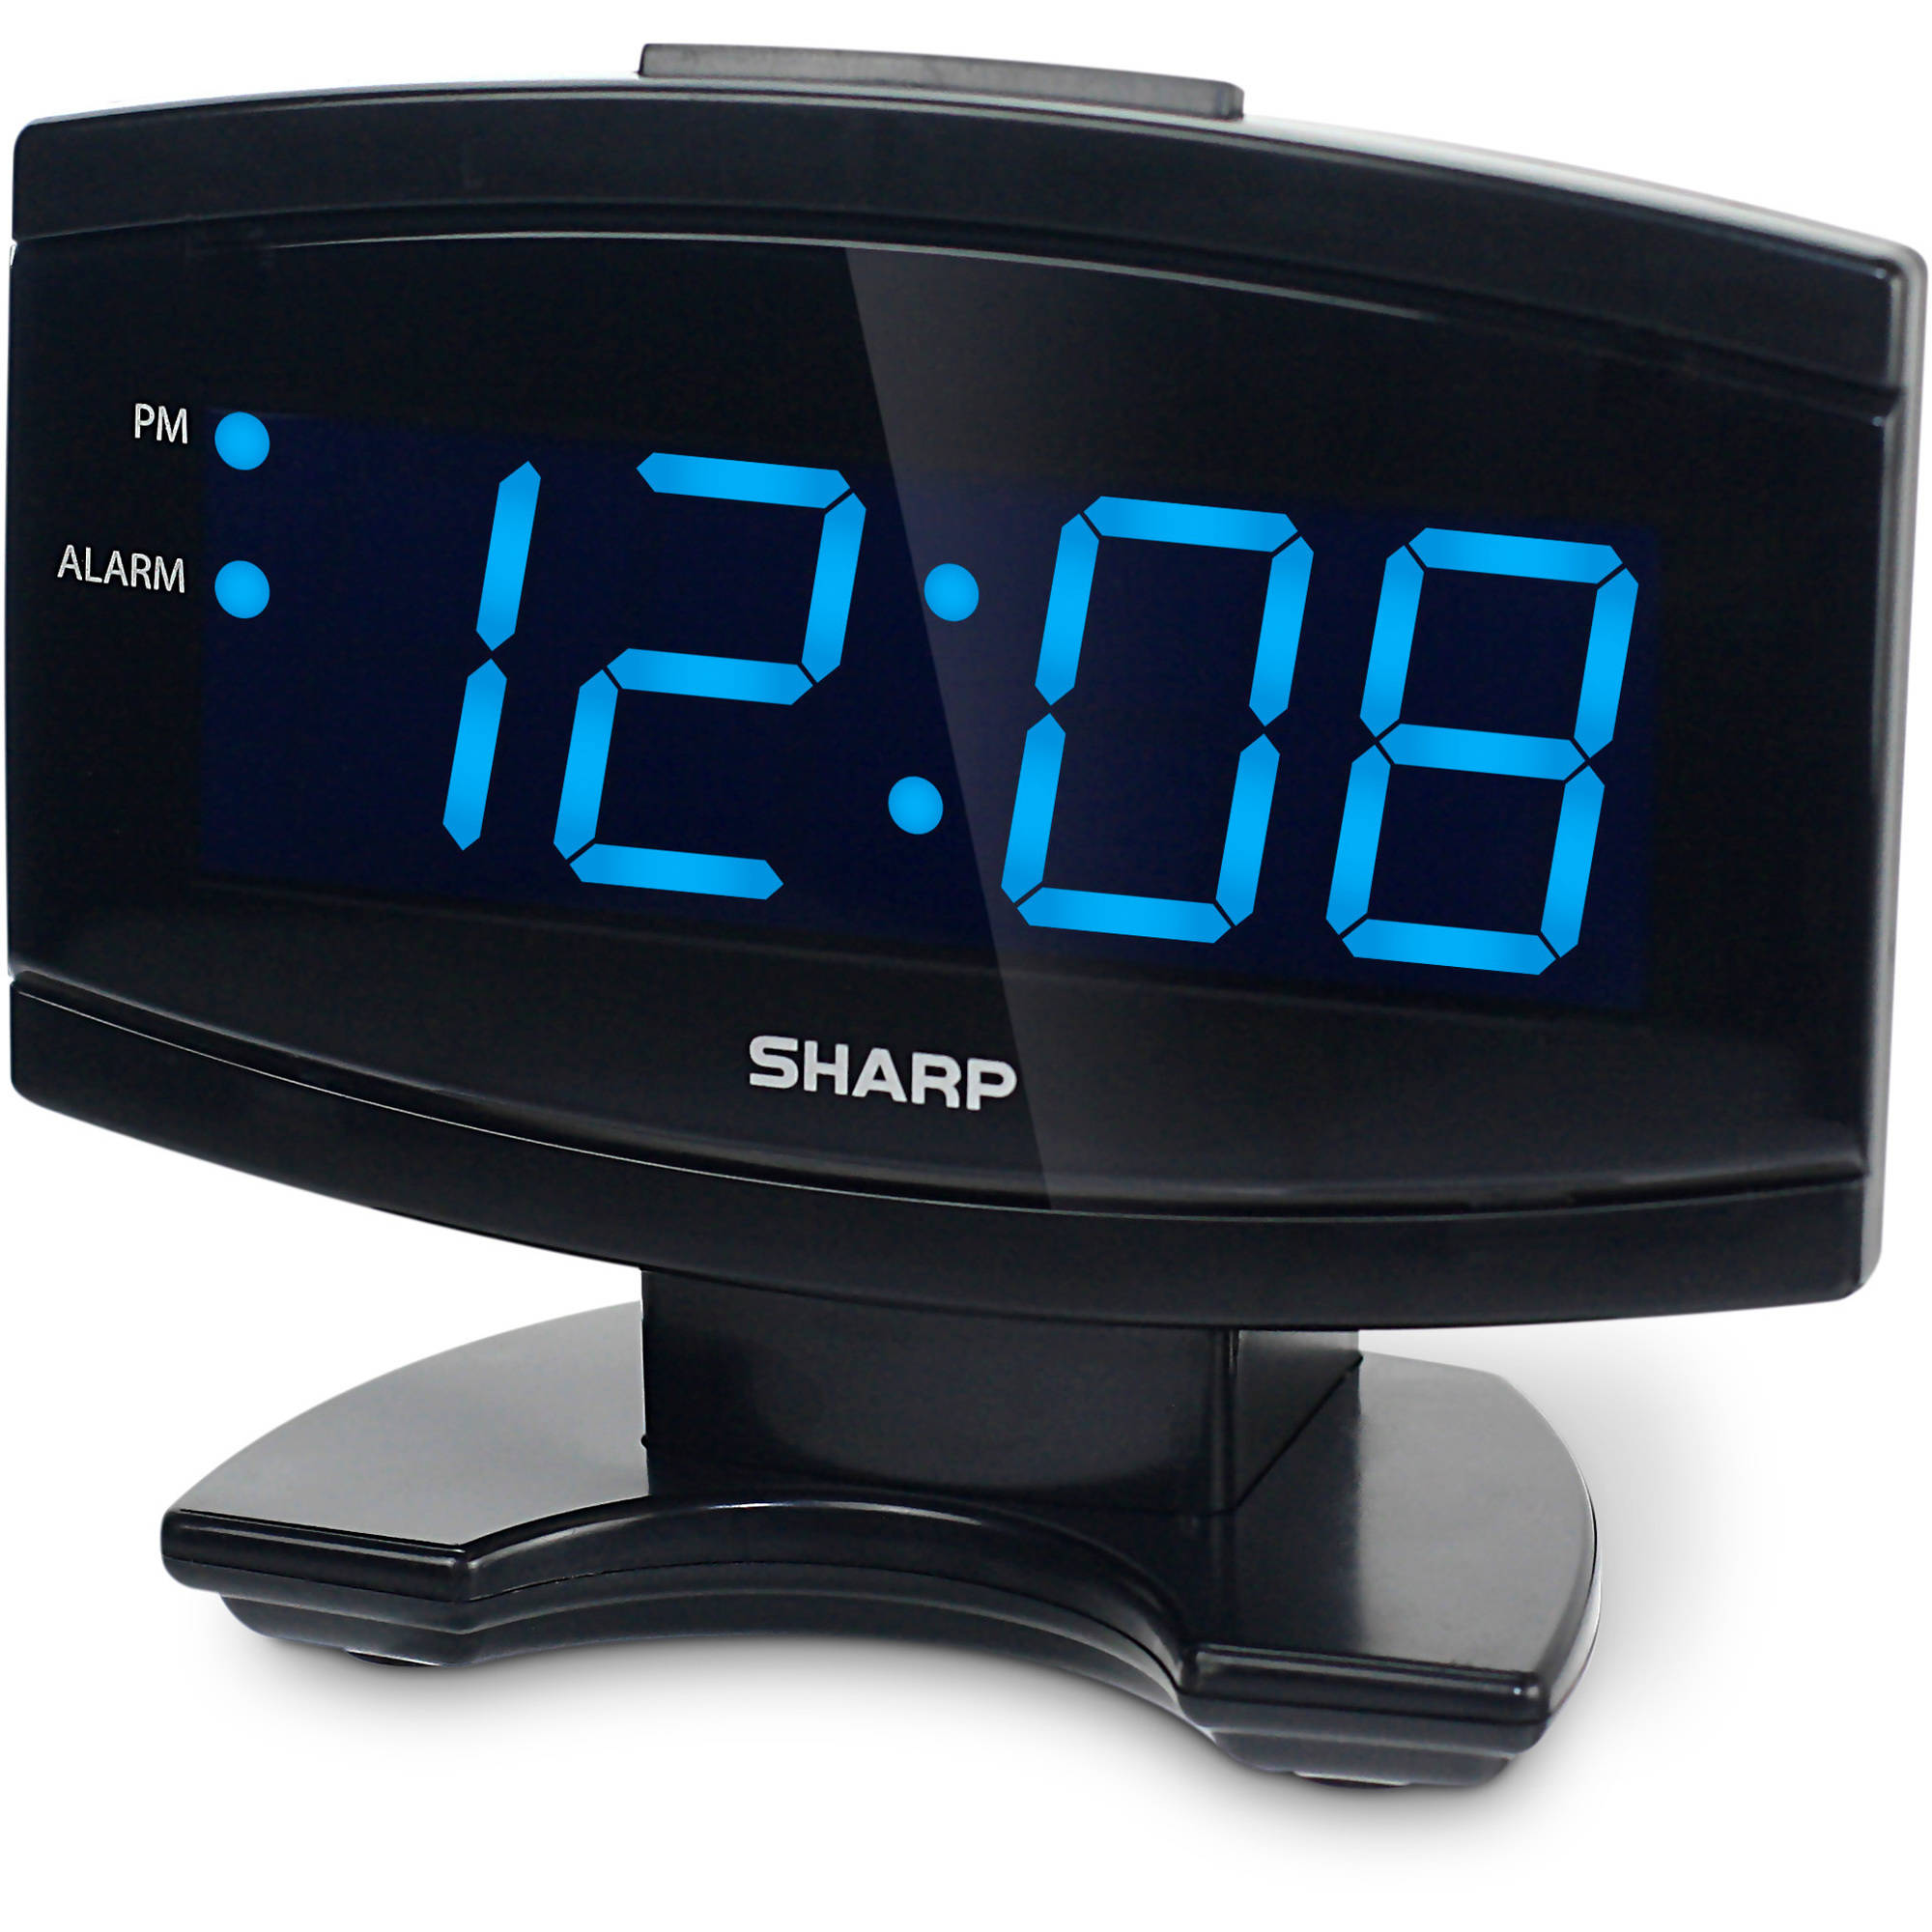 Sharp Blue Led Alarm Clock Black Walmart Com